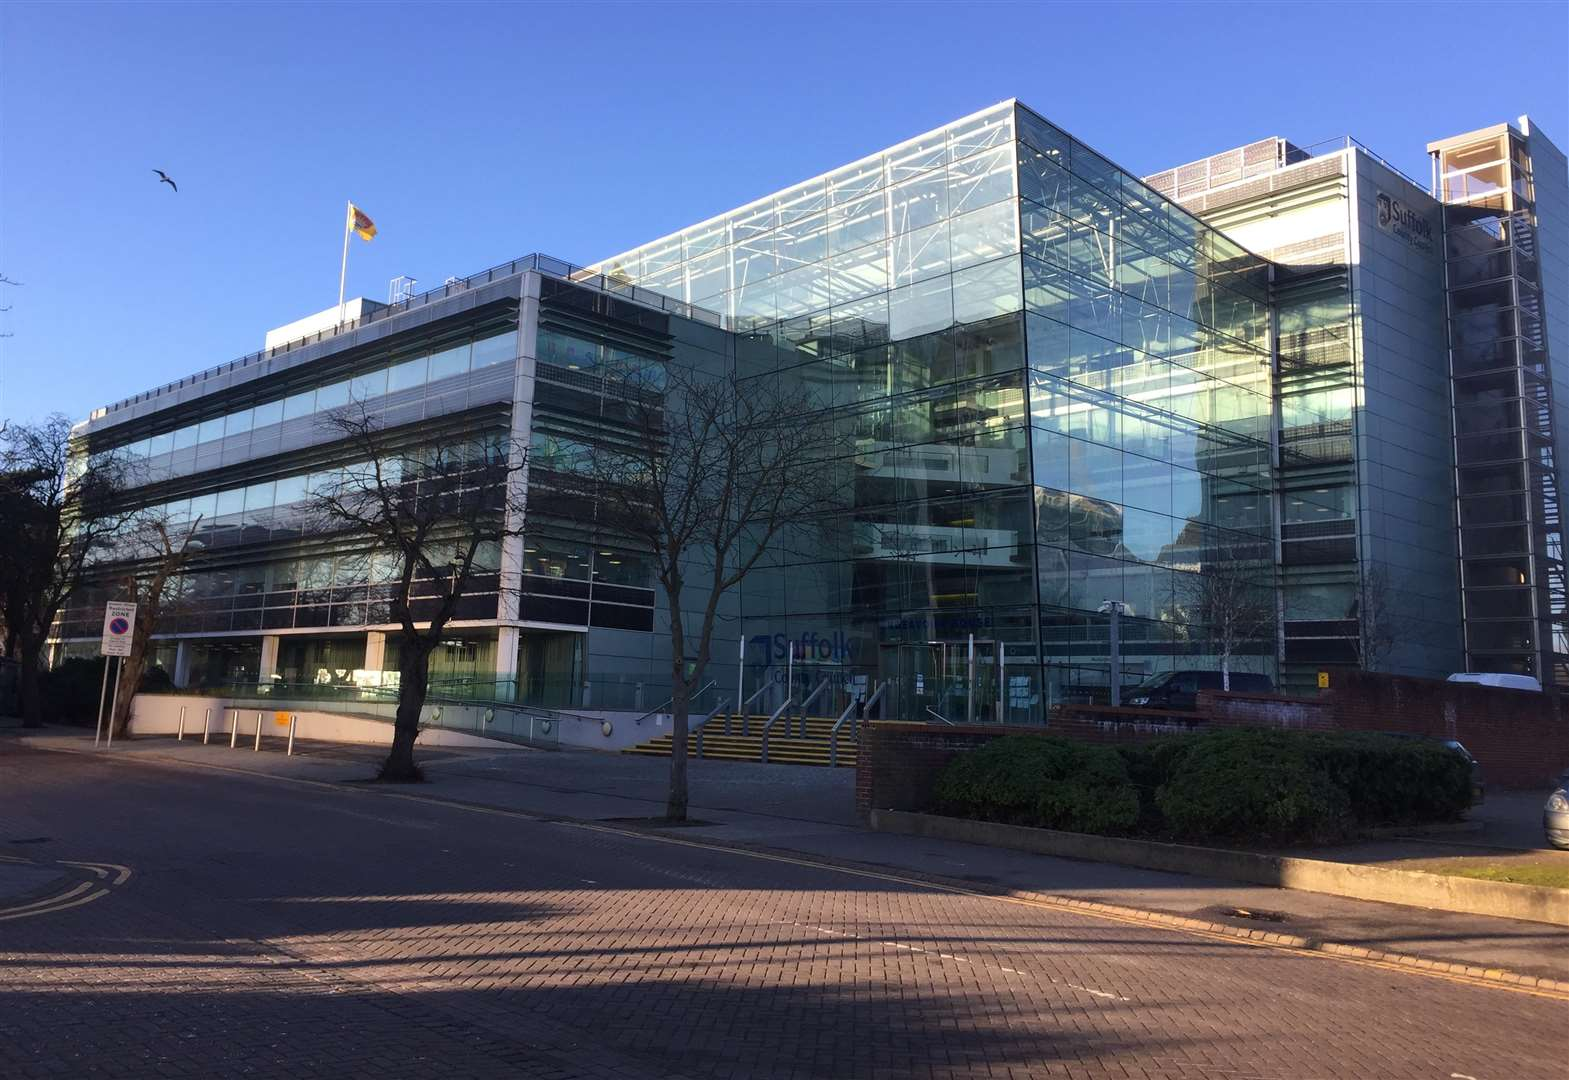 Tax rise and Citizens Advice funding cuts approved in Suffolk County Council's budget